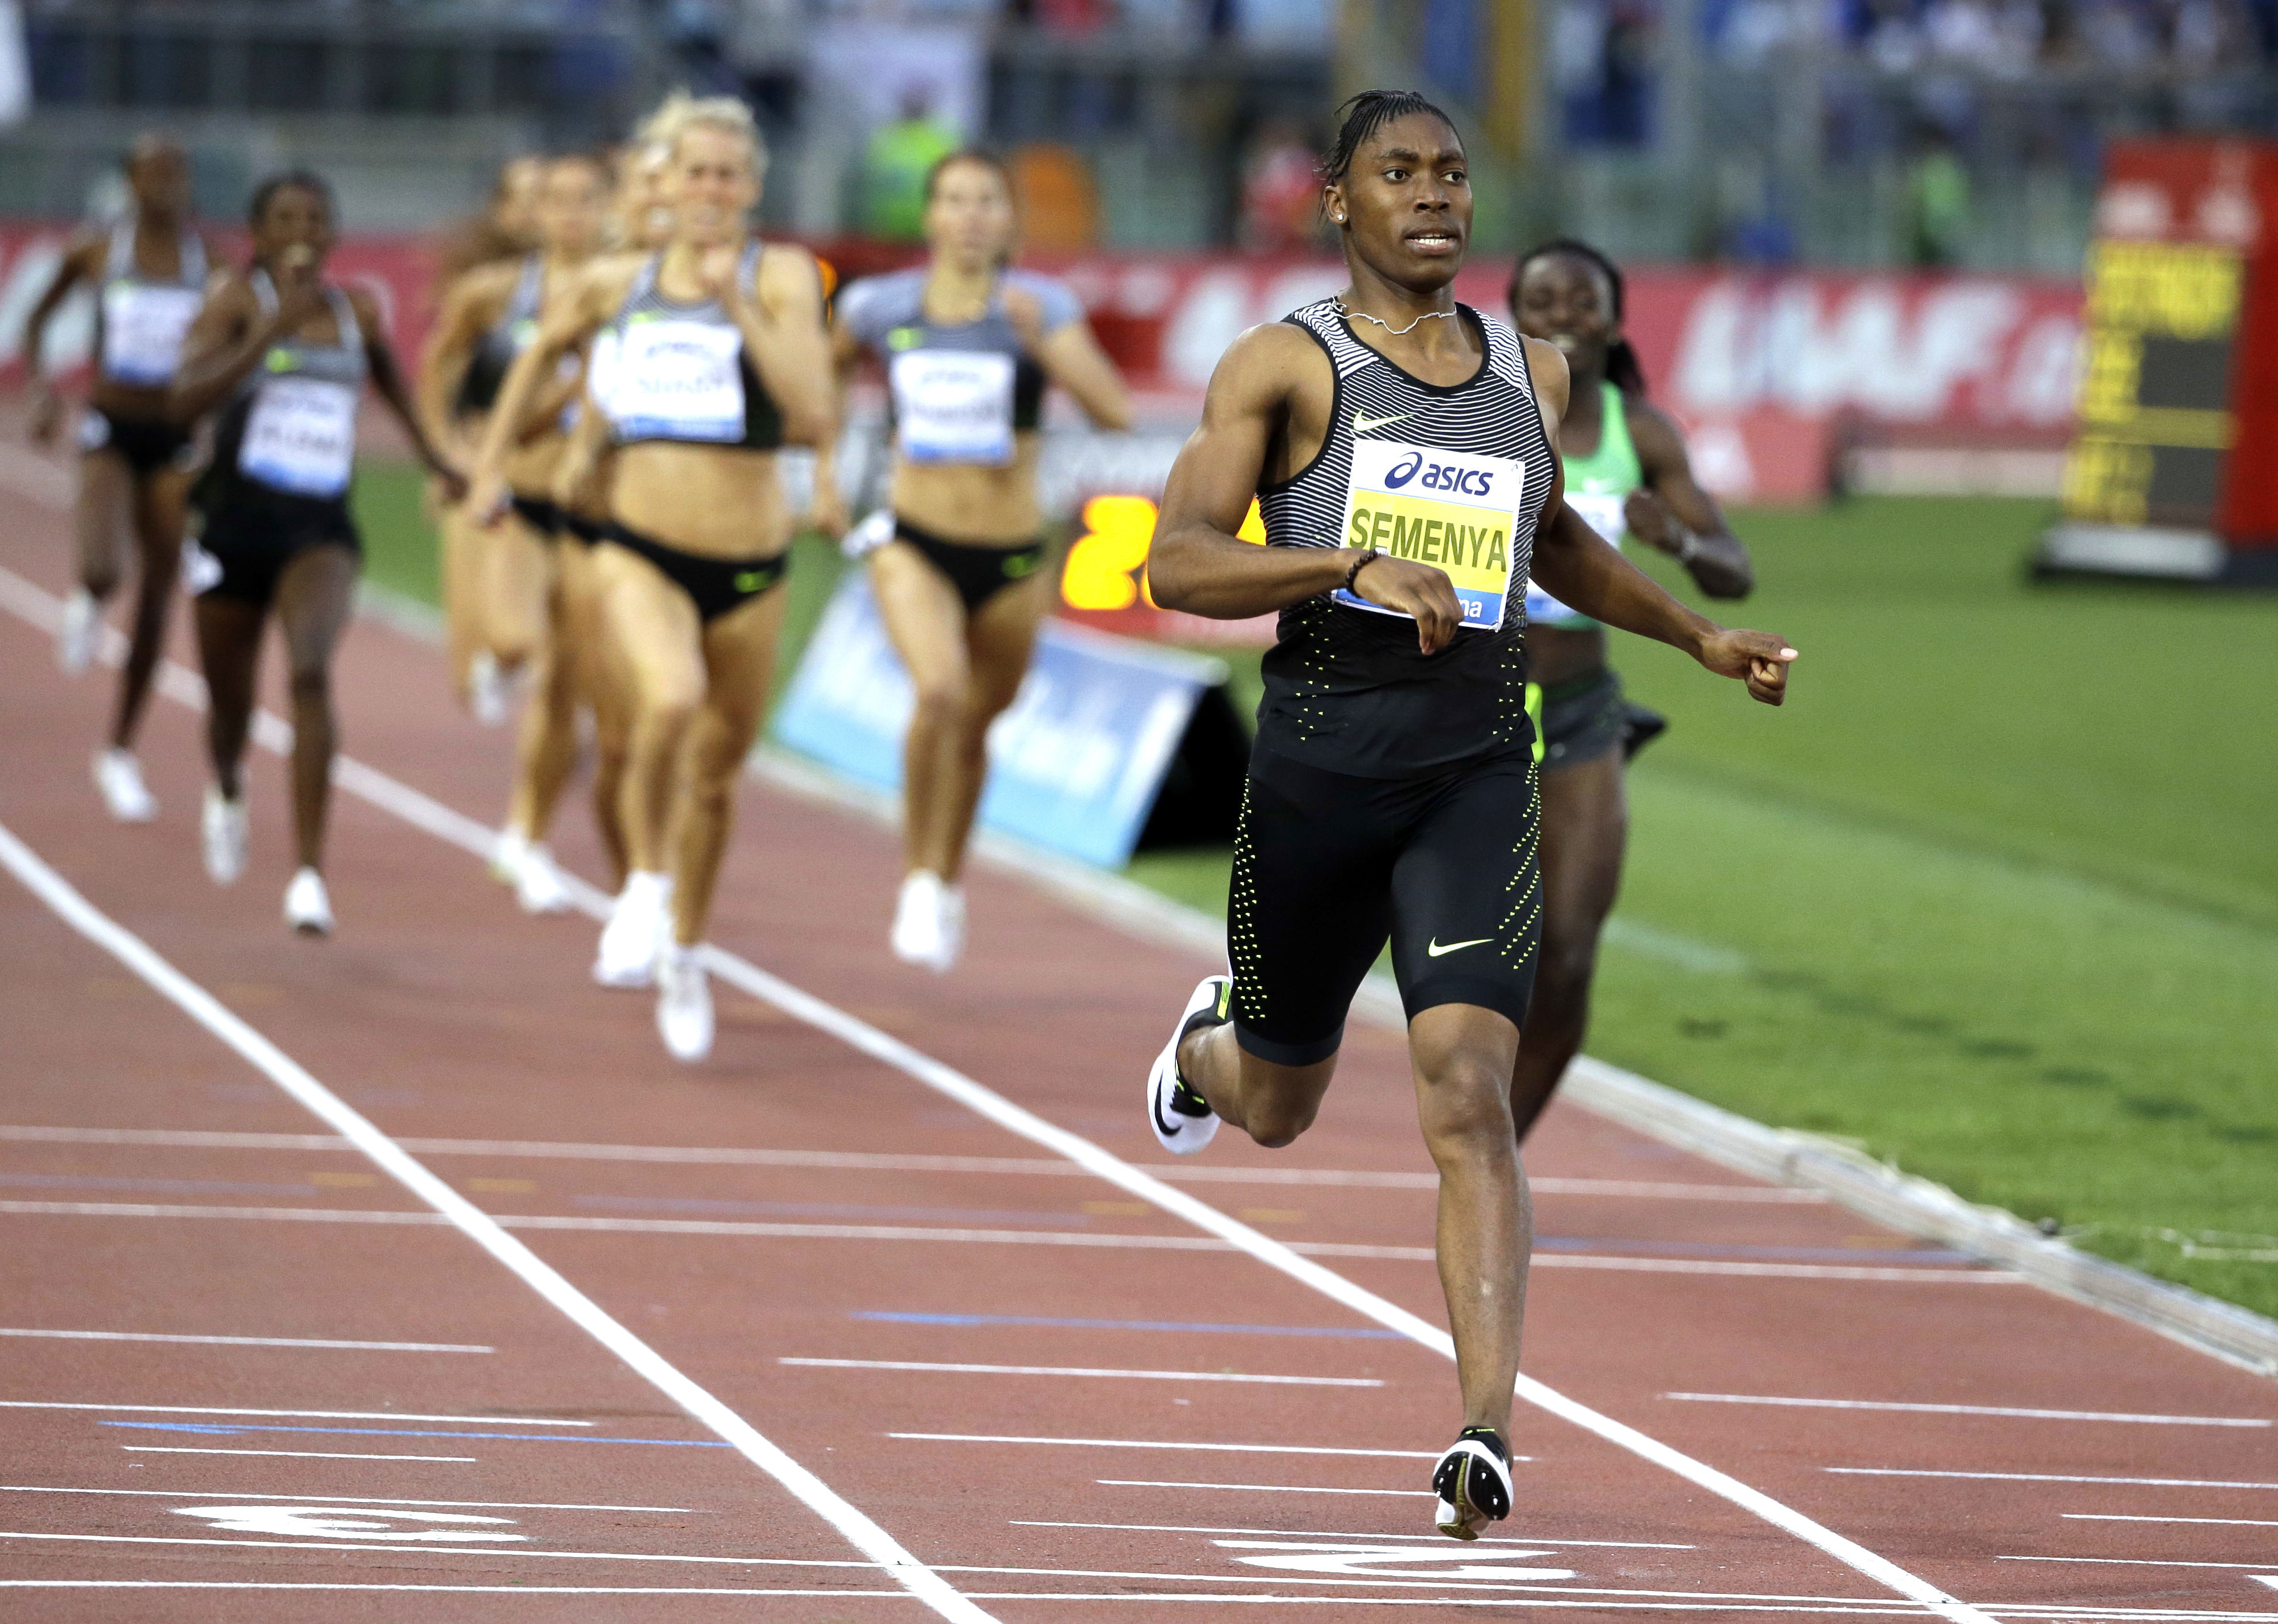 FILE - In this June 2, 2016, file photo, South Africa's Caster Semenya crosses the finish line after winning the the women's 800m event at the Golden Gala IAAF athletic meeting, in Rome's Olympic stadium. It seems the sports world just doesnt know what to